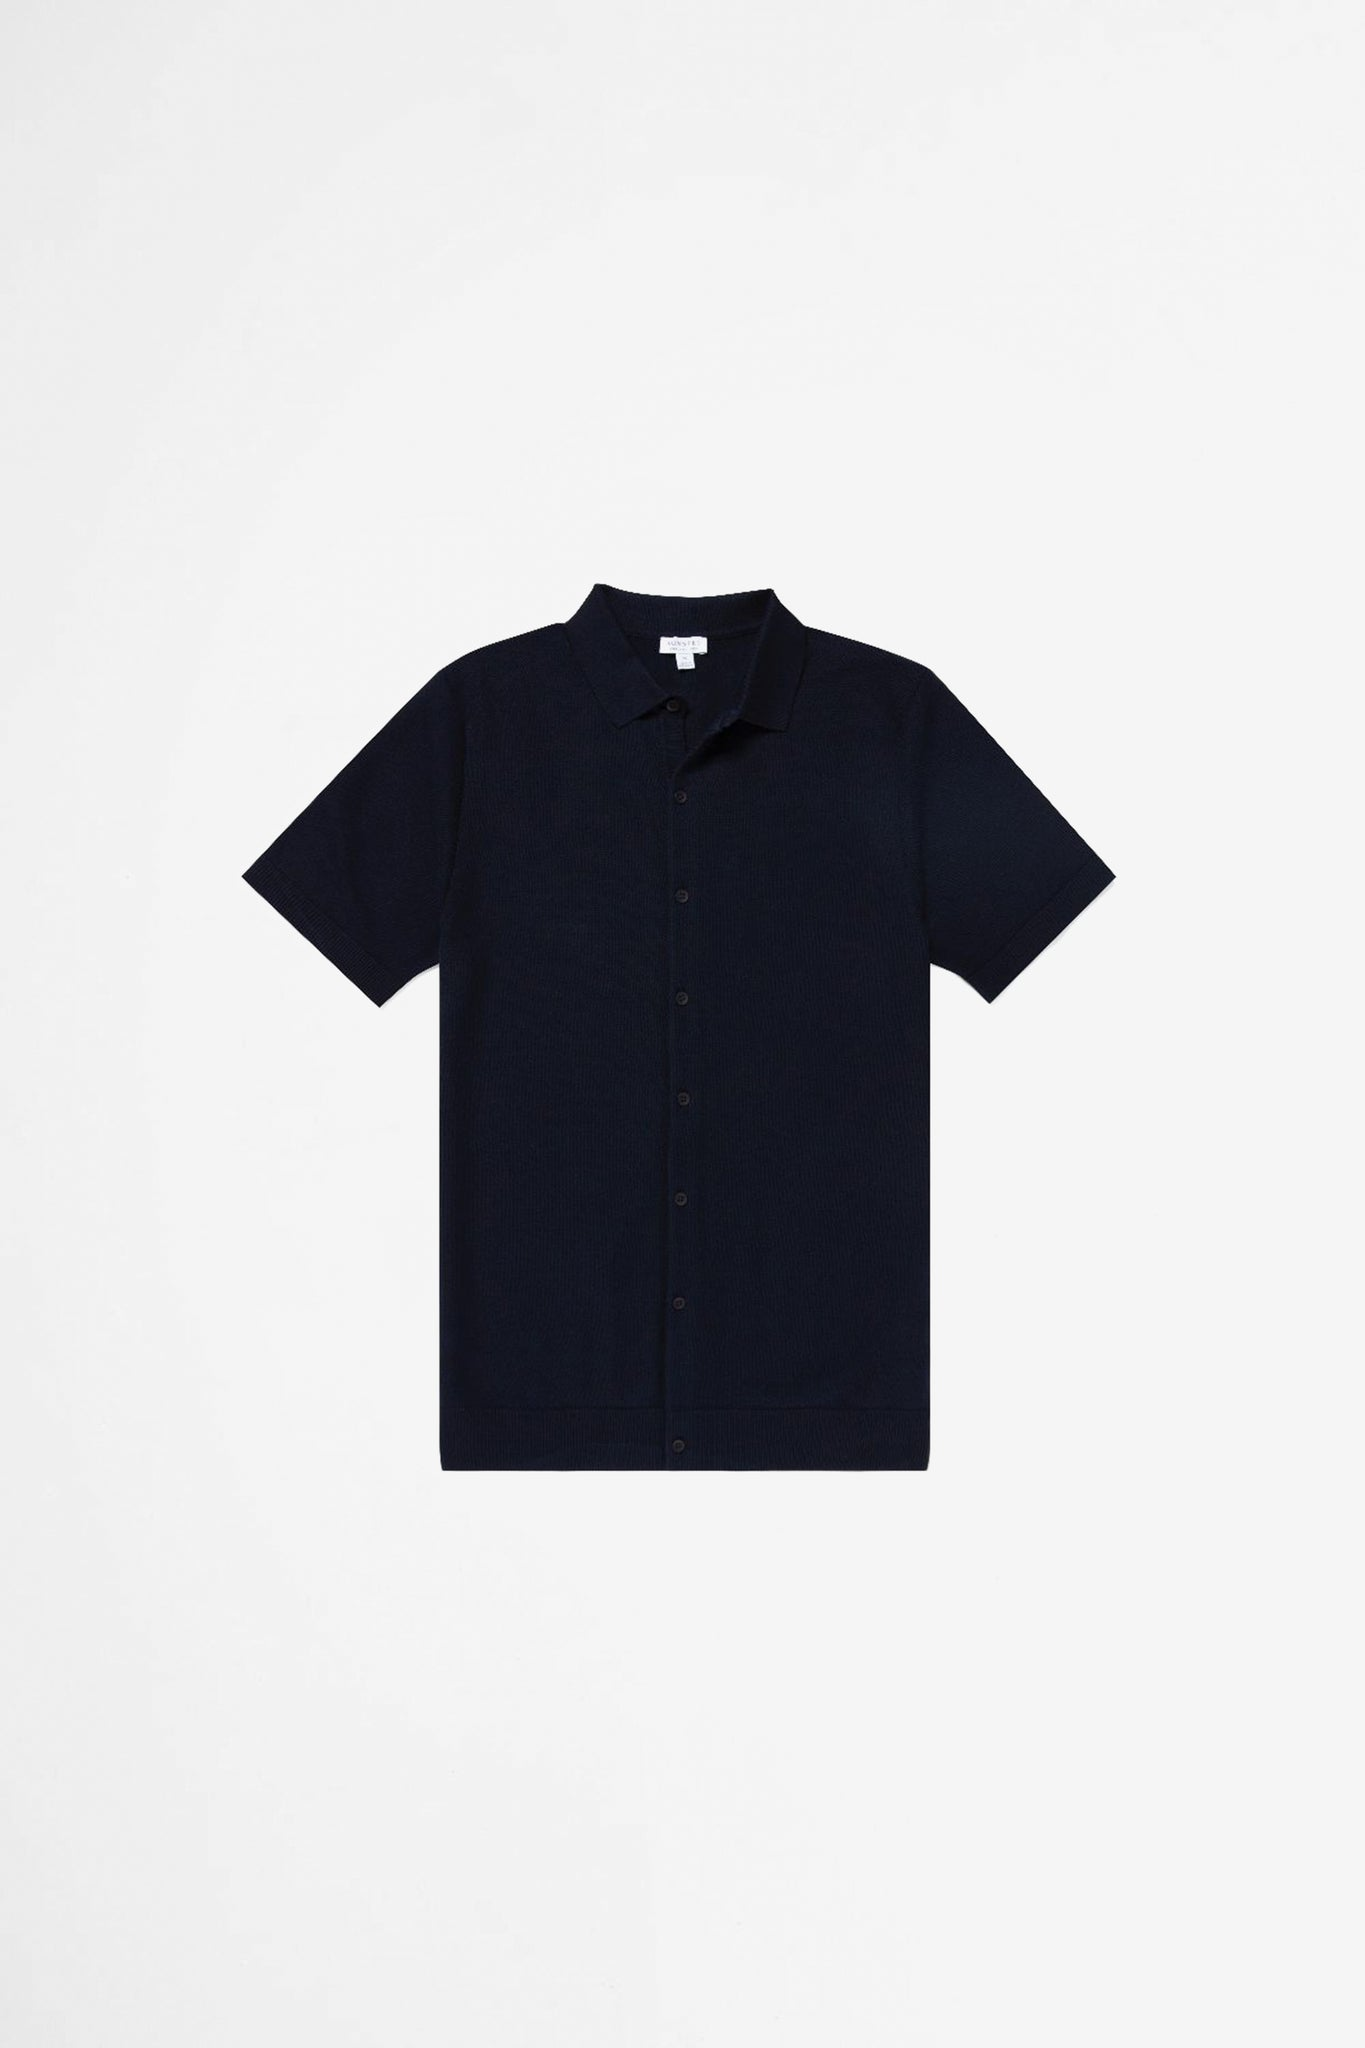 Cotton fine texture knitted shirt navy